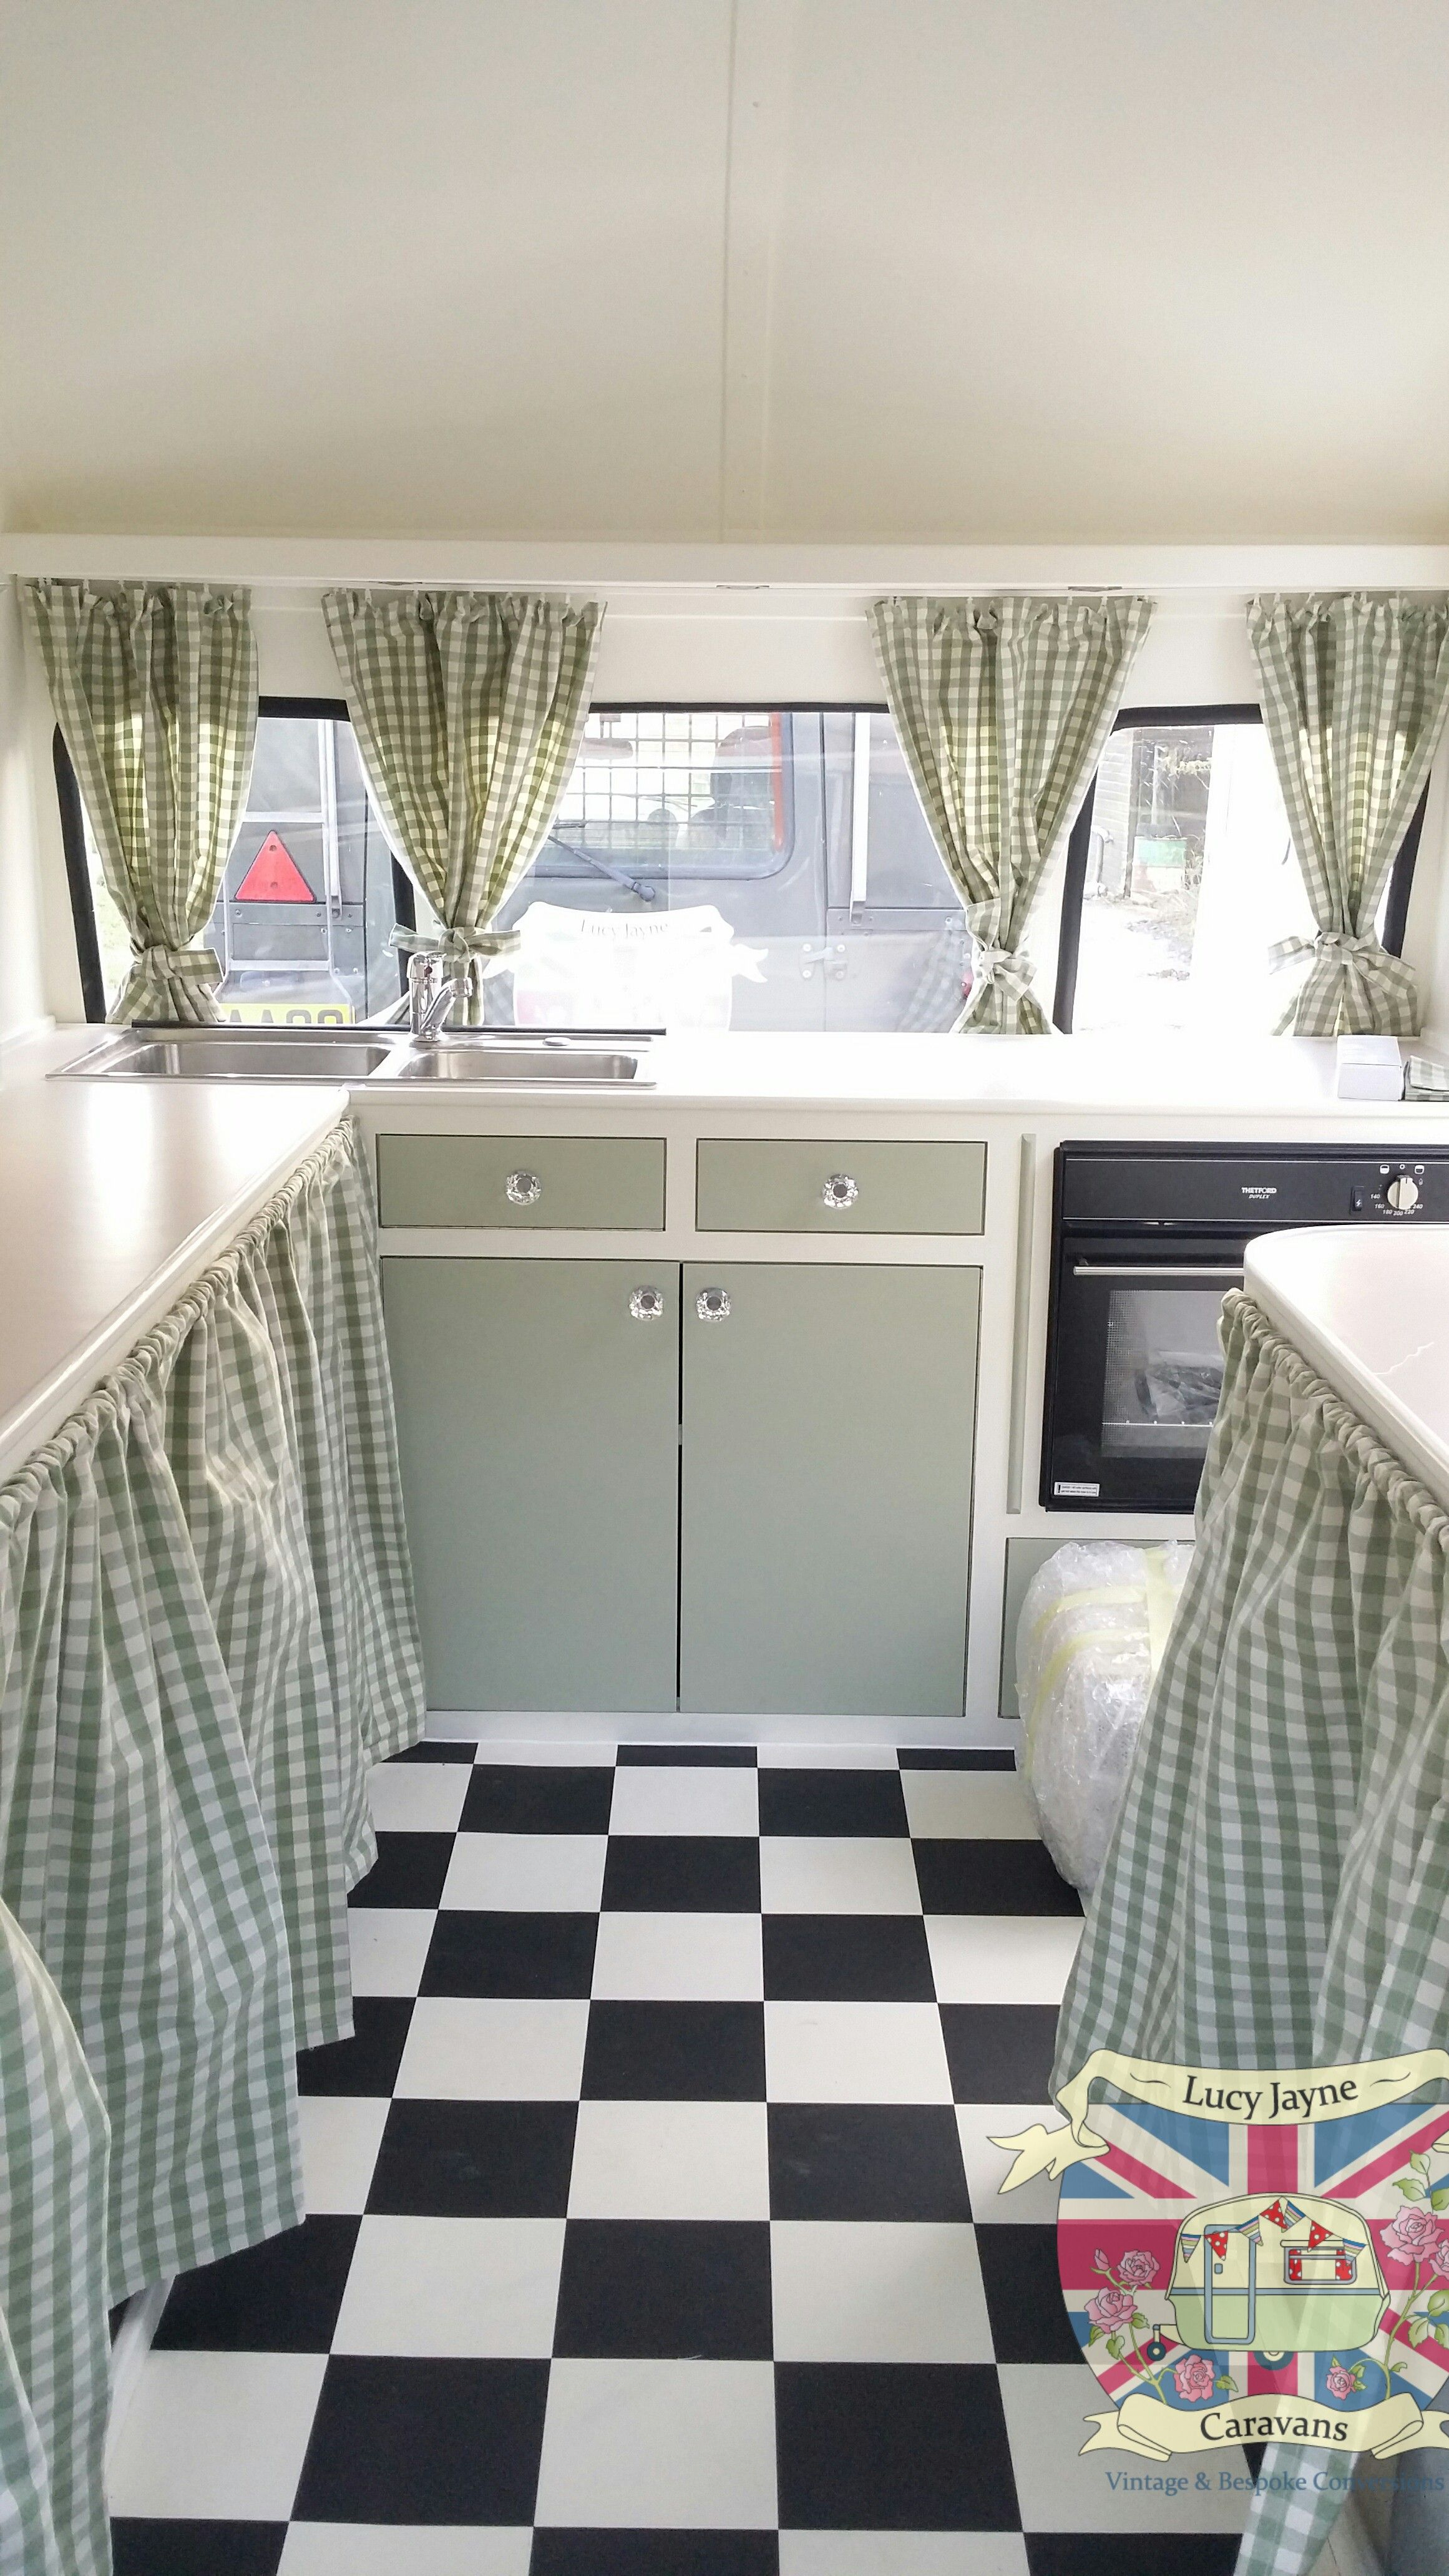 vintage caravan bespoke built soft catering interior. Black Bedroom Furniture Sets. Home Design Ideas